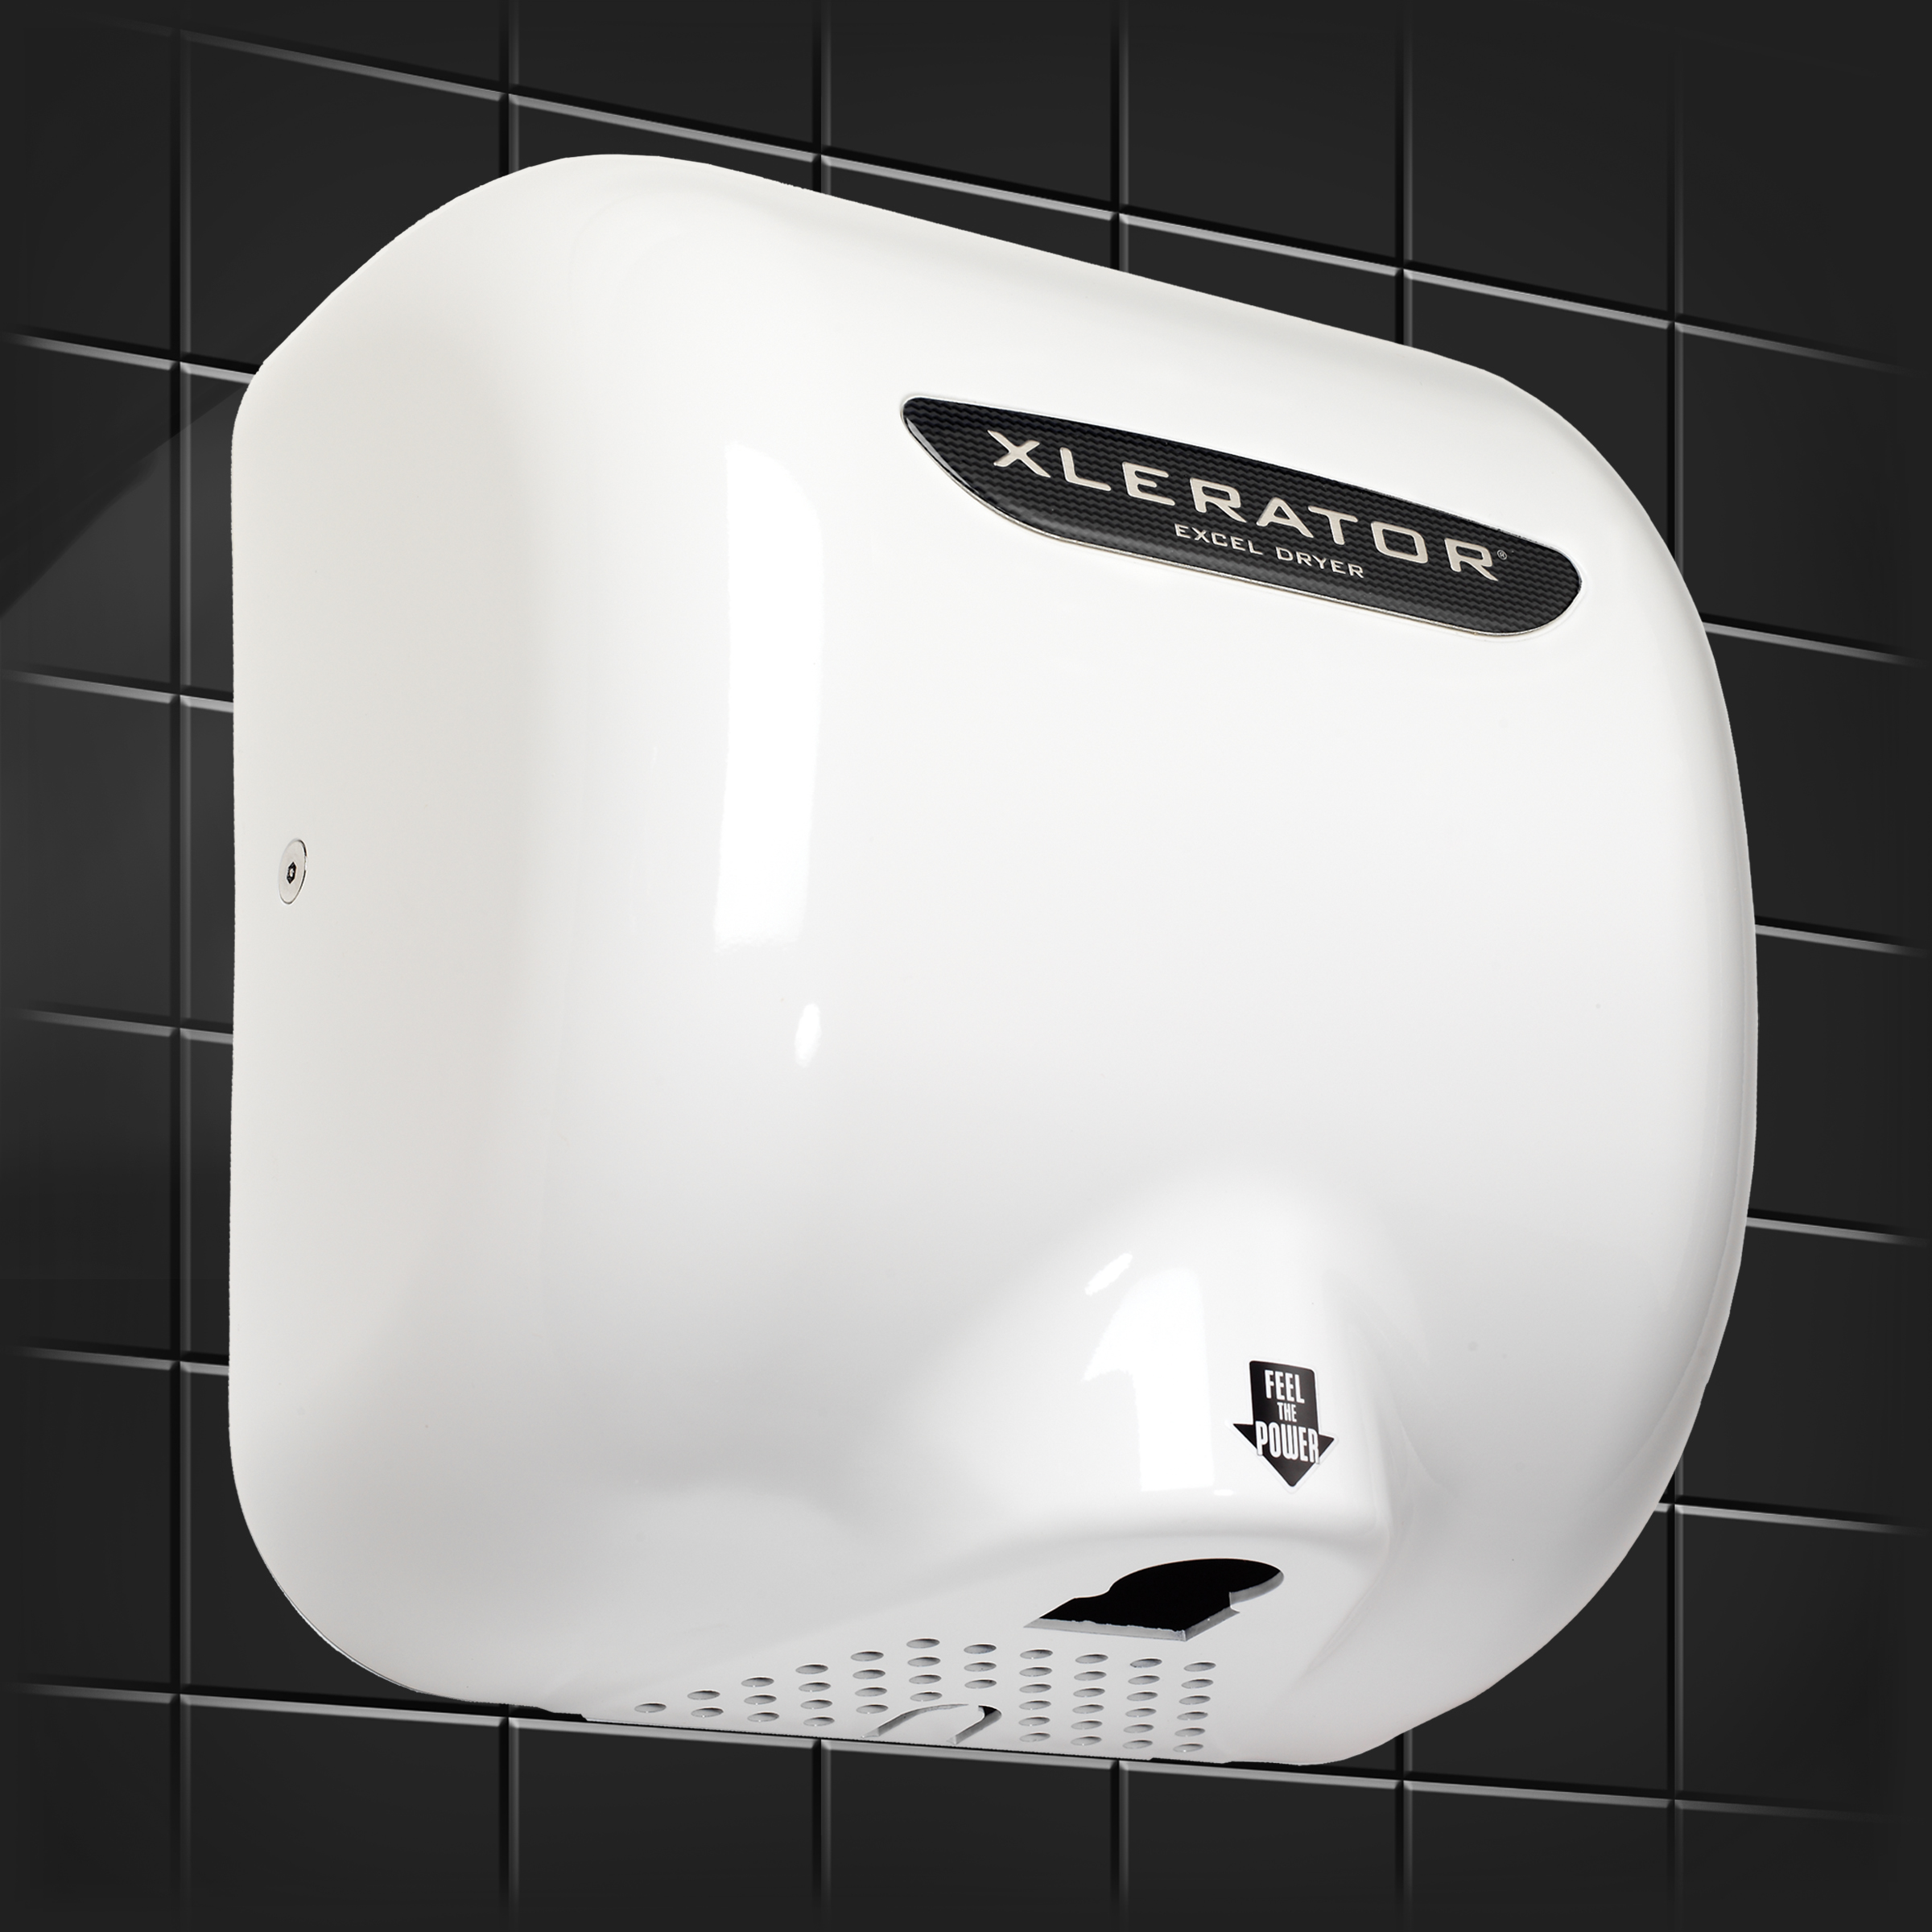 Excel Dryer XLERATOR Hand Dryer XL-BW, White Thermoset Resin (BMC) Cover, Automatic Sensor, Surface